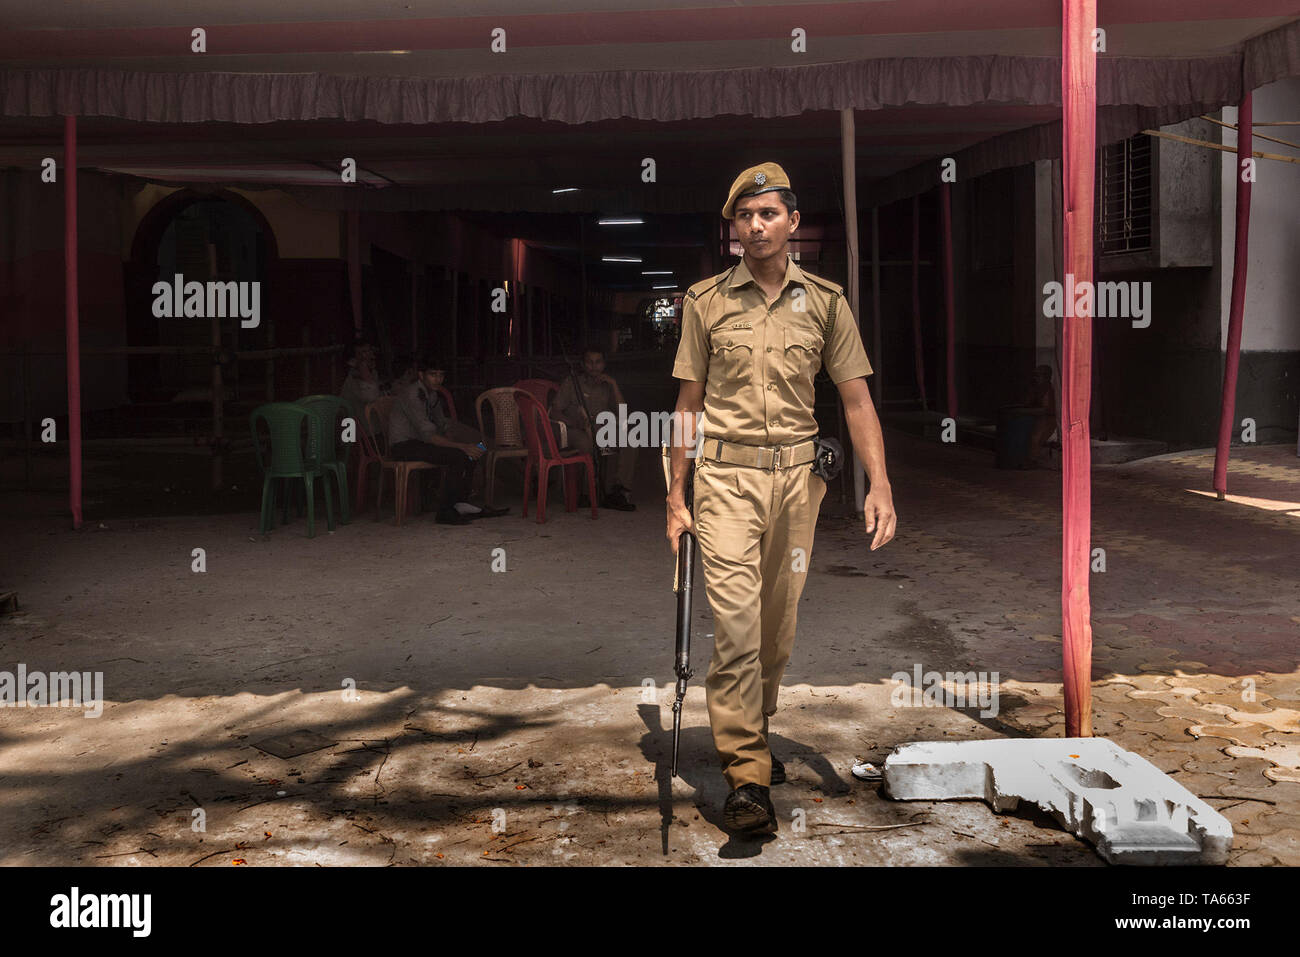 Kolkata. 22nd May, 2019. Indian security personnel guard outside the strong rooms on the eve of counting day in Kolkata, India on May 22, 2019. The Indian Election Commission (ECI) has finalized arrangements and security measures in and around the counting centres a day ahead of the vote counting for India's 17th general elections across the country, officials said here Wednesday. Credit: Tumpa Mondal/Xinhua/Alamy Live News - Stock Image